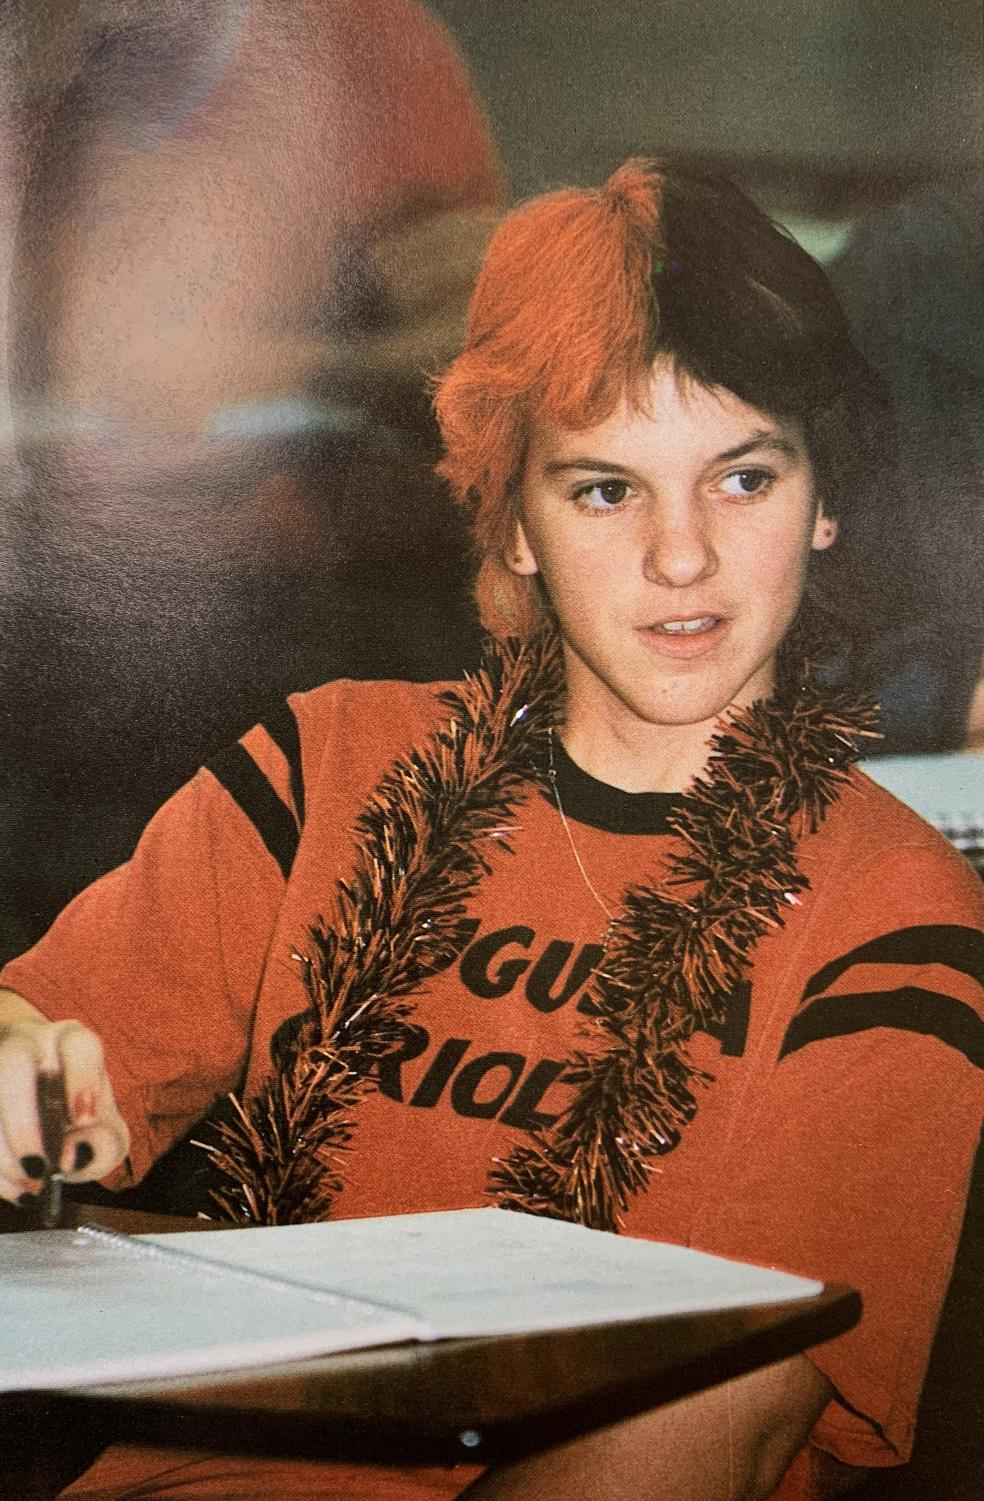 Polly  Wheat wears an Orange and Black themed outfit for spirit week. She was a student who attended AHS in 1985.